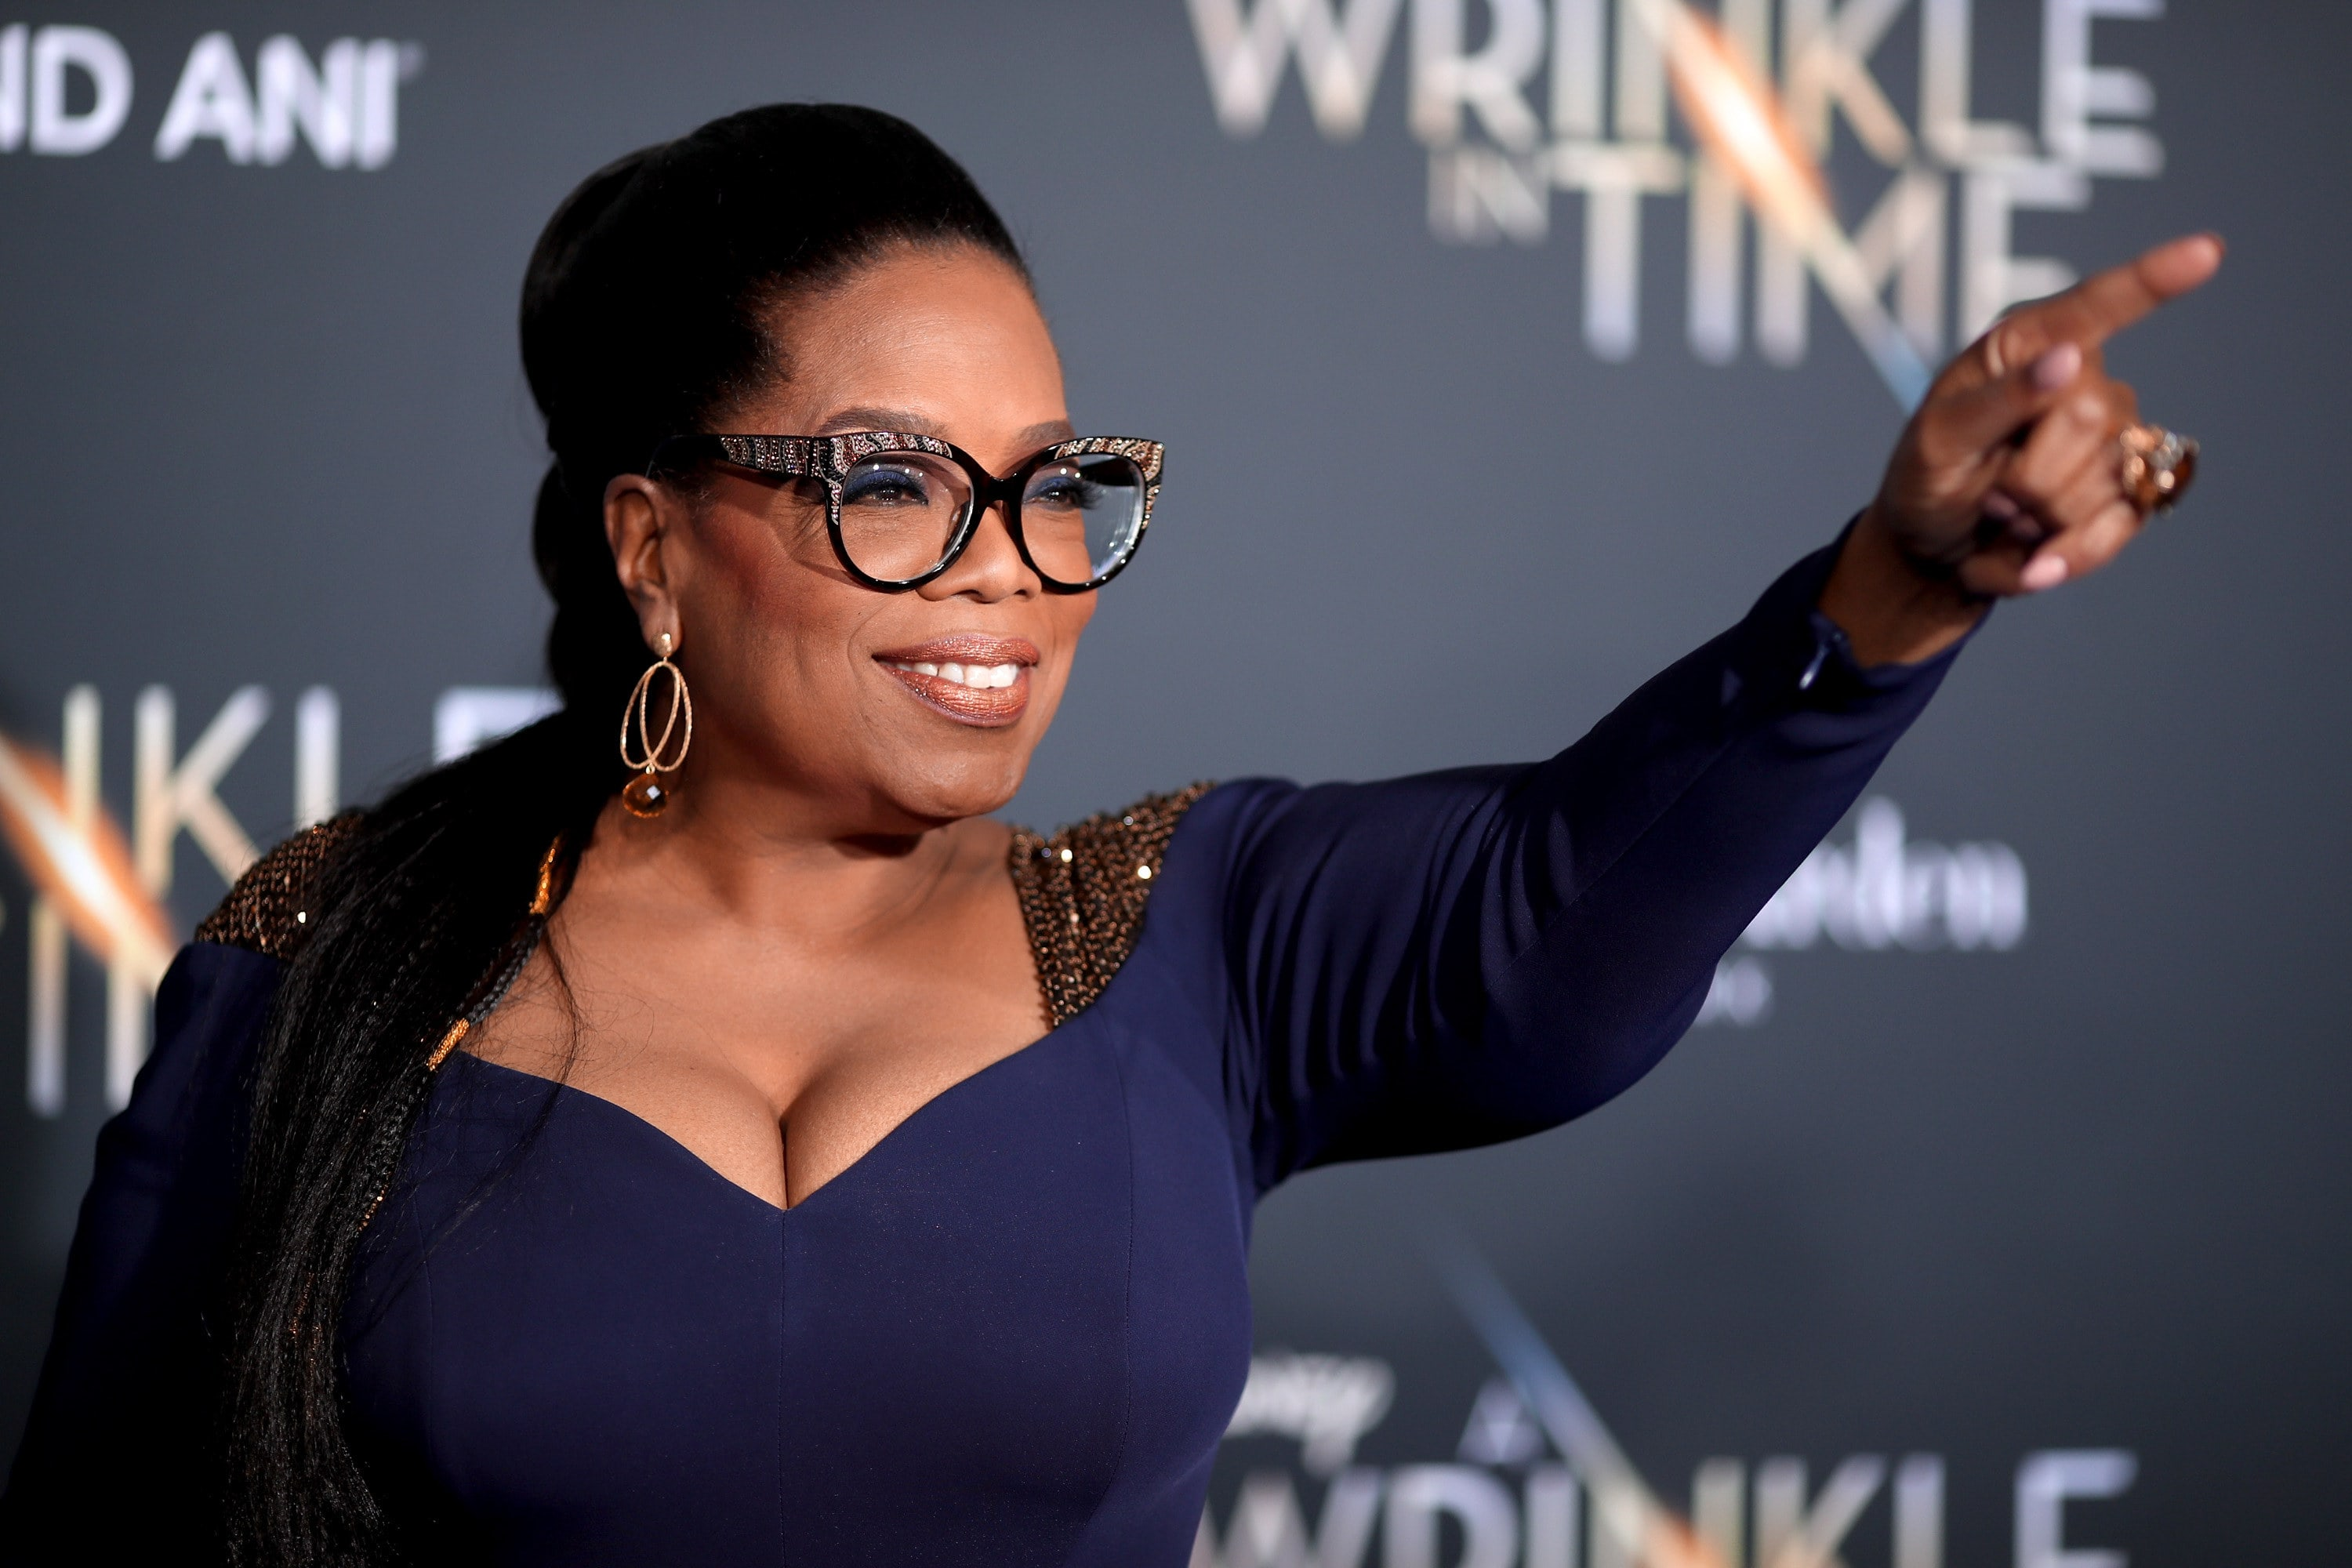 Oprah points in the distance at a red carpet event